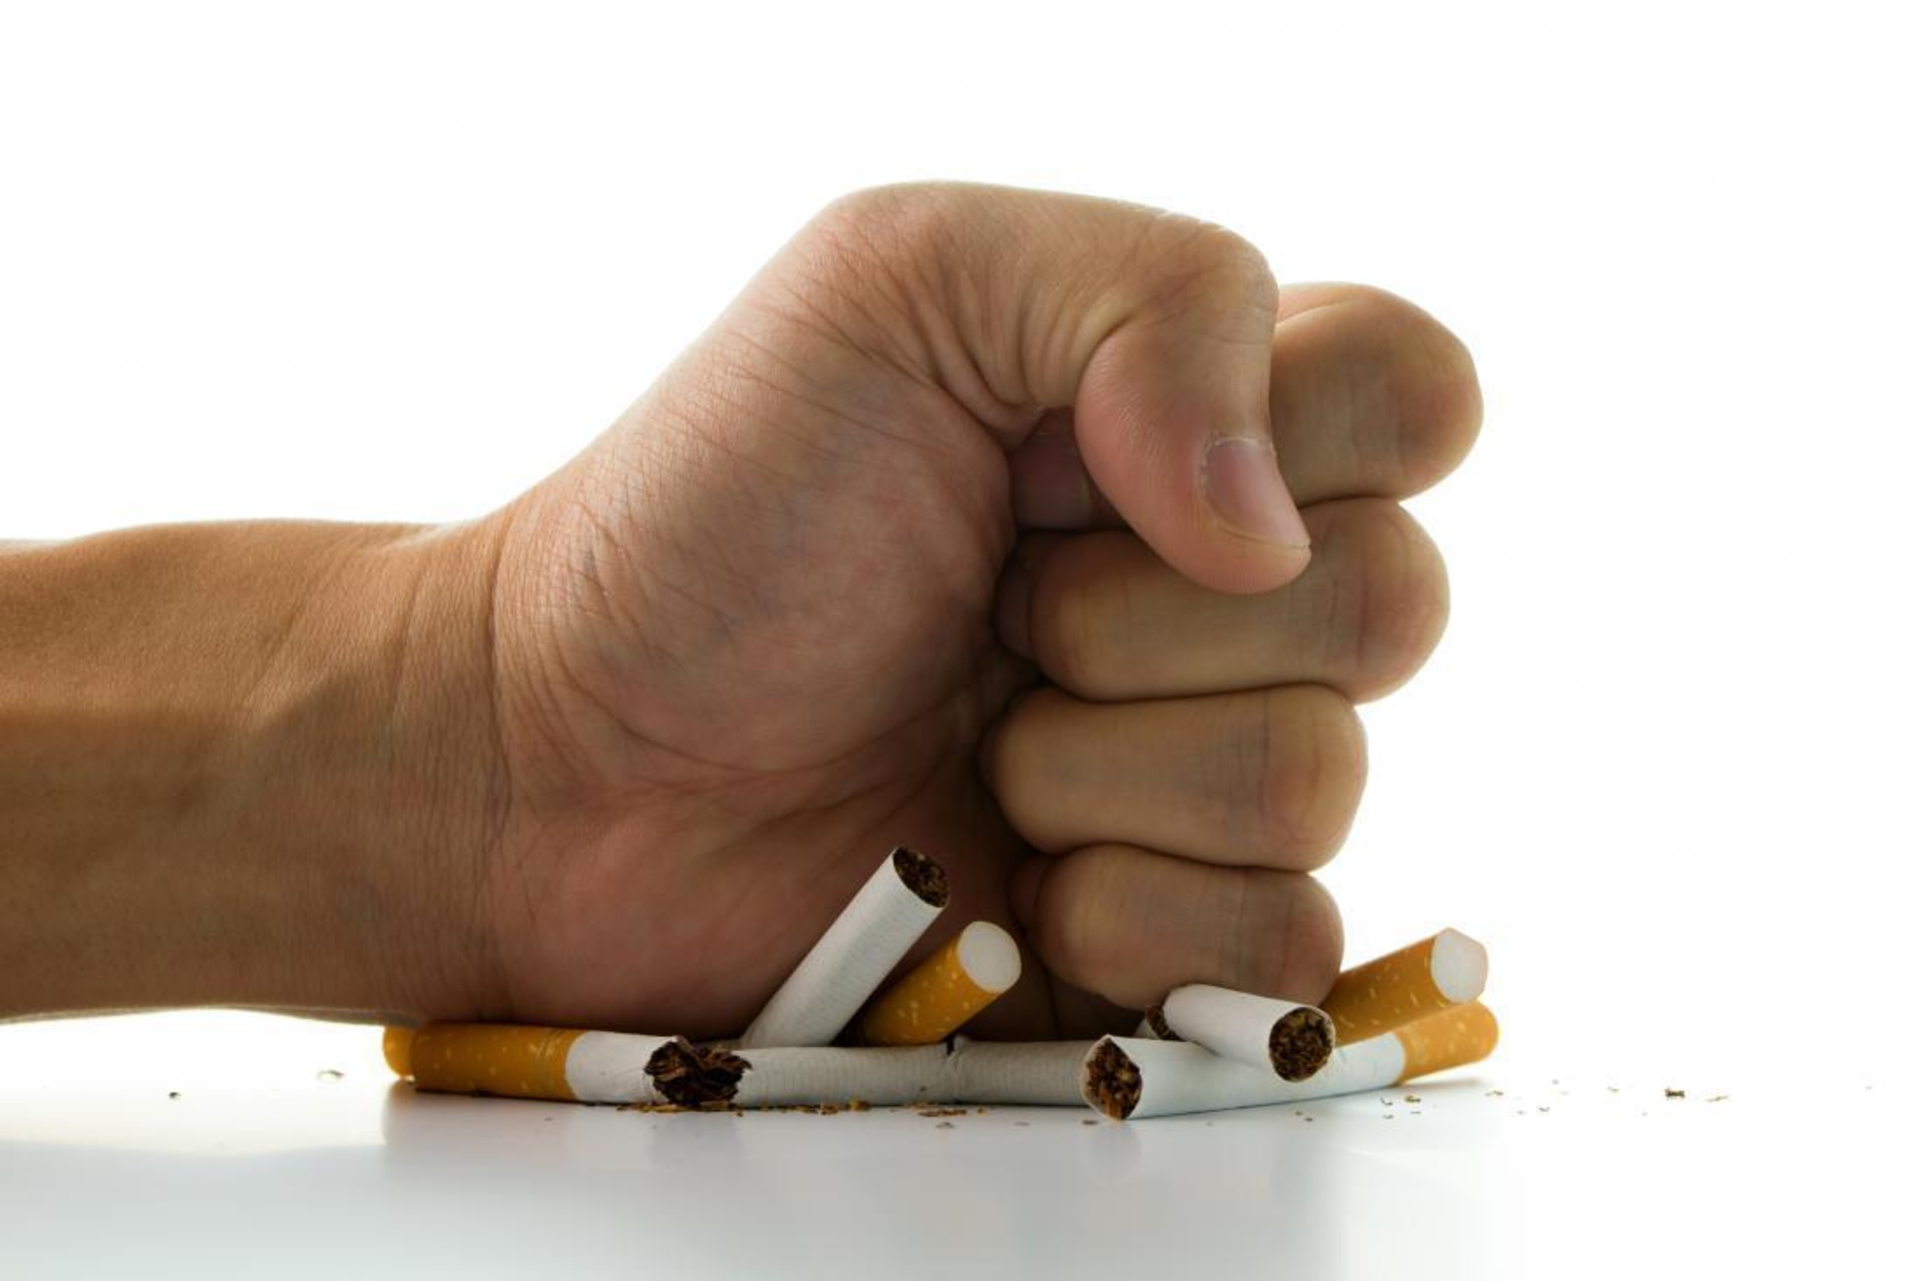 Zoom The World - quitting-smoking-can-be-tough-but-we-have-put-together-some-steps-that-may-help-you-along-the-way